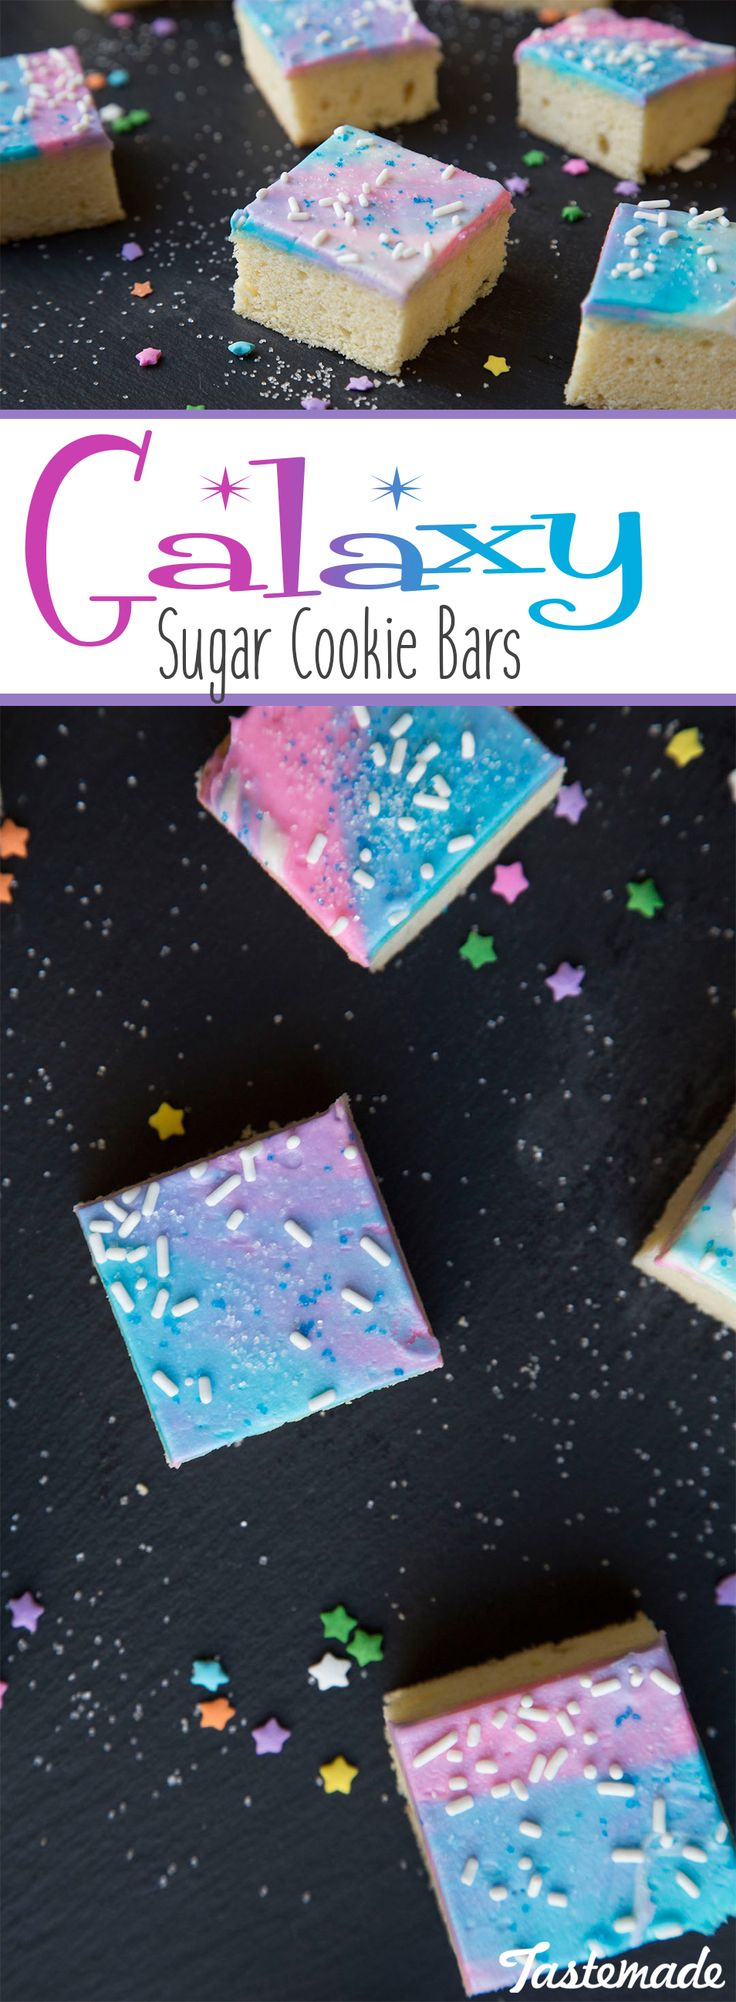 Send regular ol' dessert out of this world with this sweet and colorful treat. Super fun and colorful, perfect for parties!